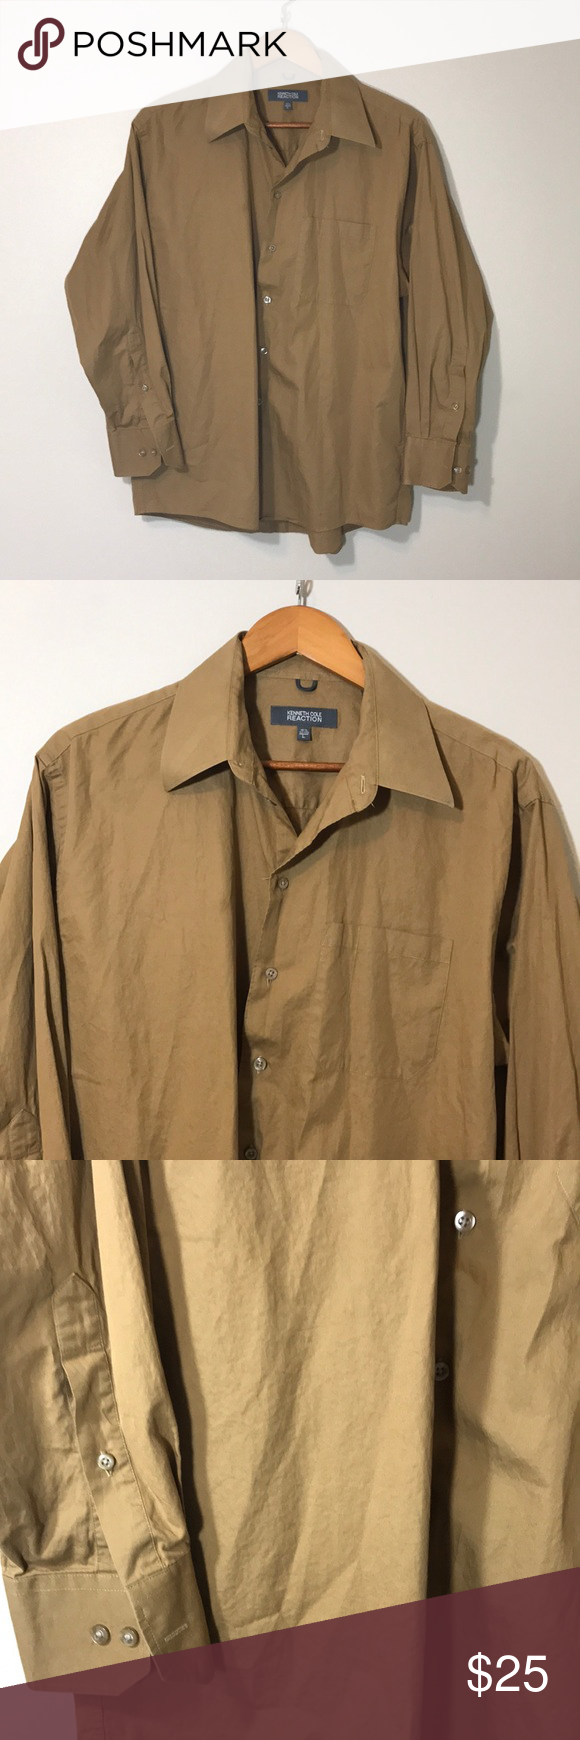 Kenneth Cole On Down Shirt Size Large Perfect Condition Chart For This Are Included In The Pictures Reaction Shirts Dress